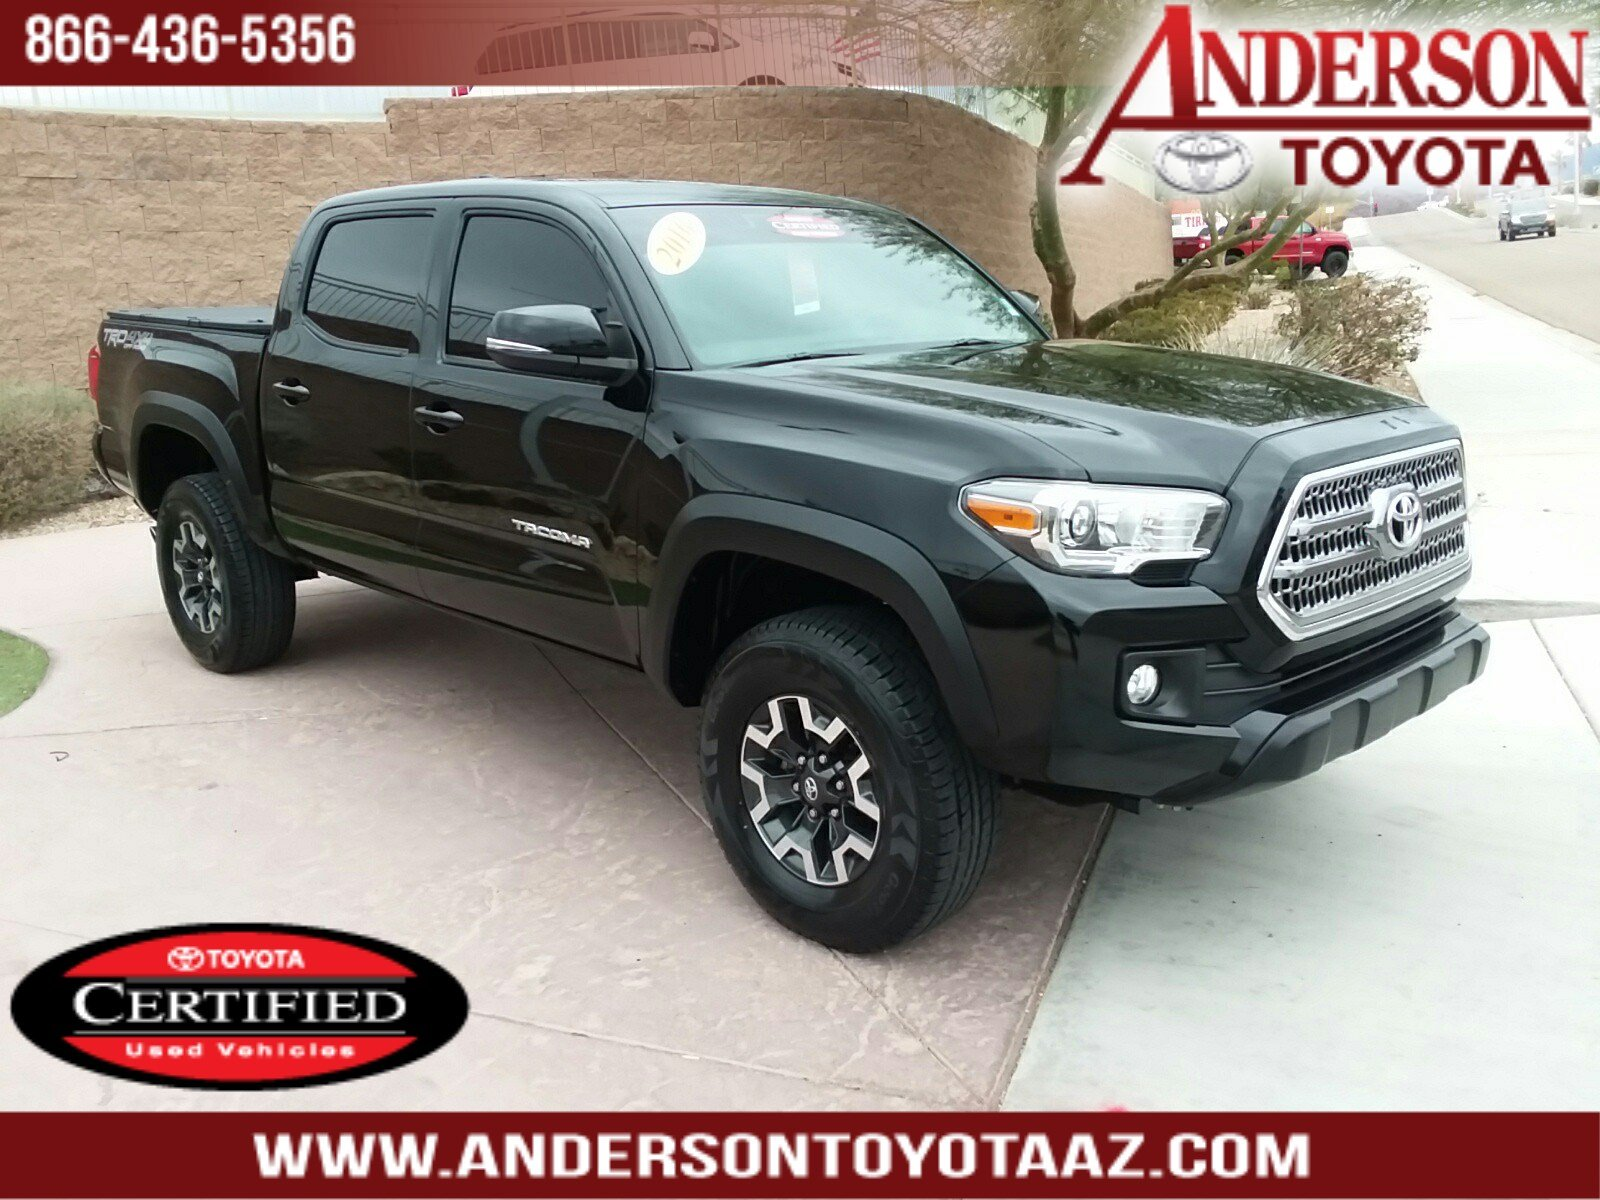 Certified Pre-Owned 2017 Toyota Tacoma TRD Offroad